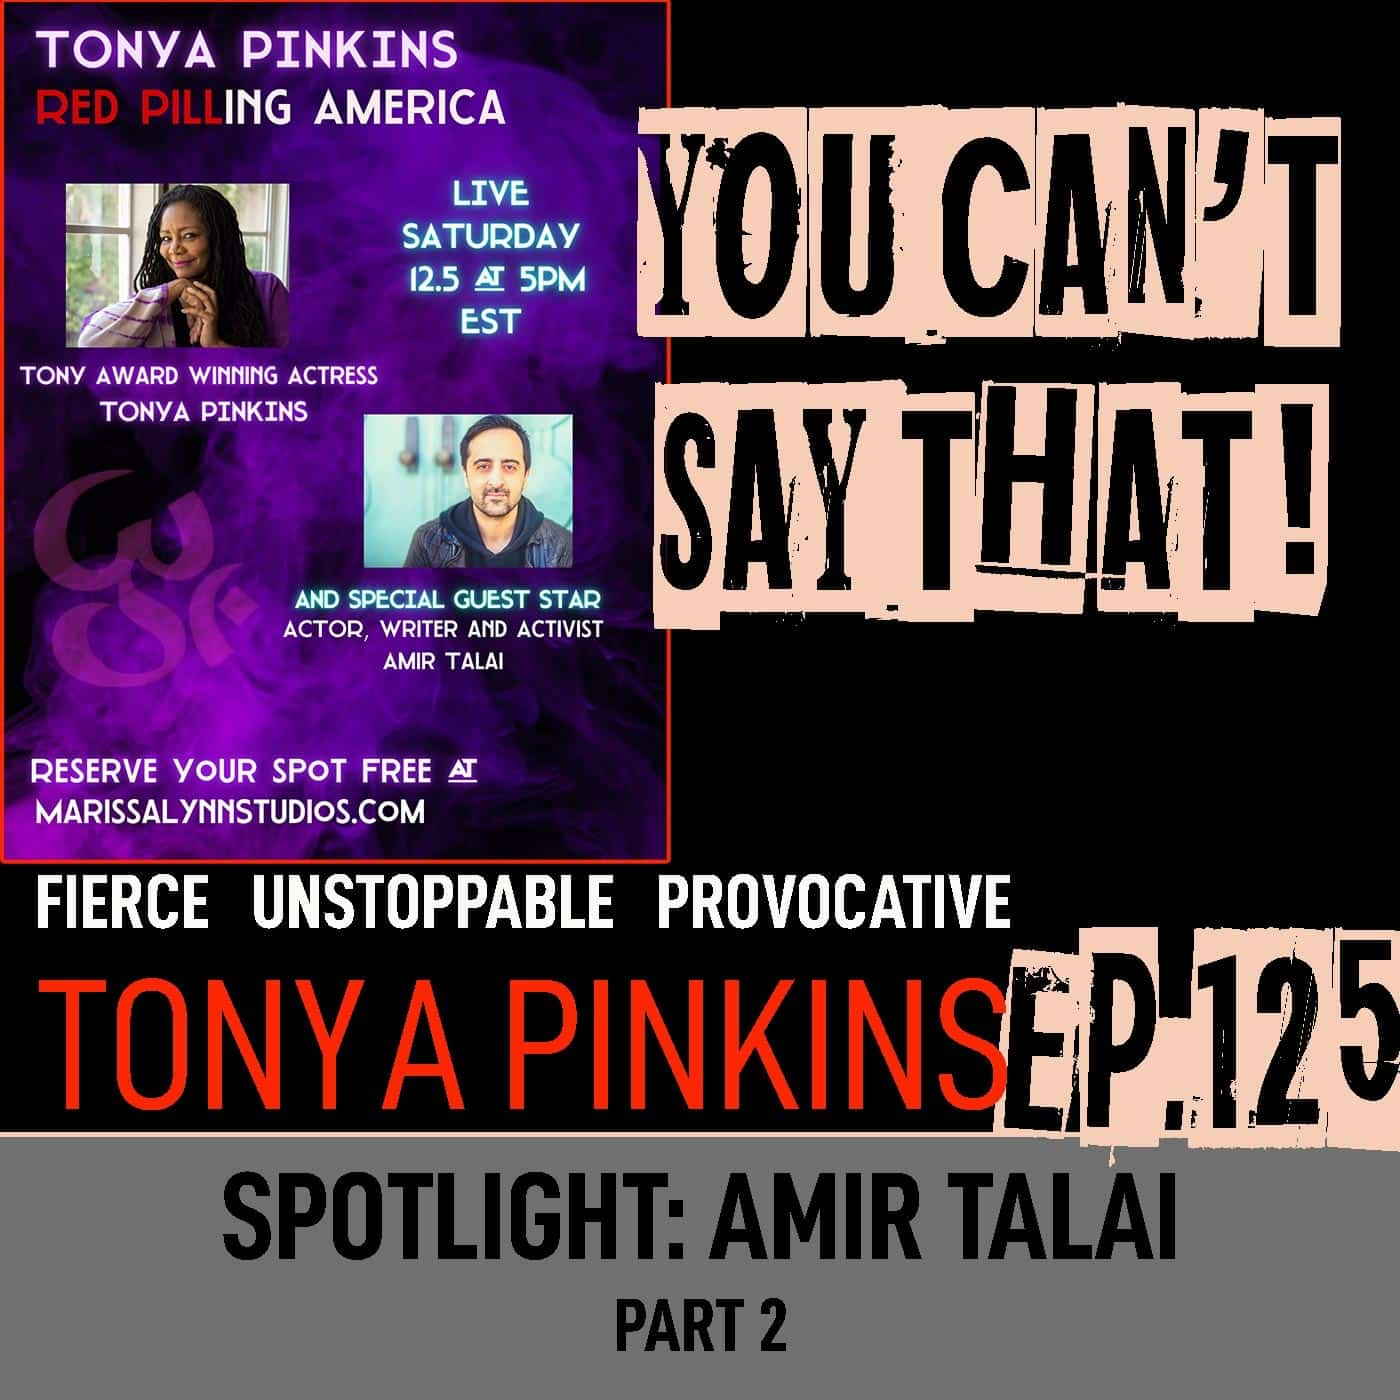 Ep125 - SPOTLIGHT: Red Pilling America with with Amir Talai (Part 2)